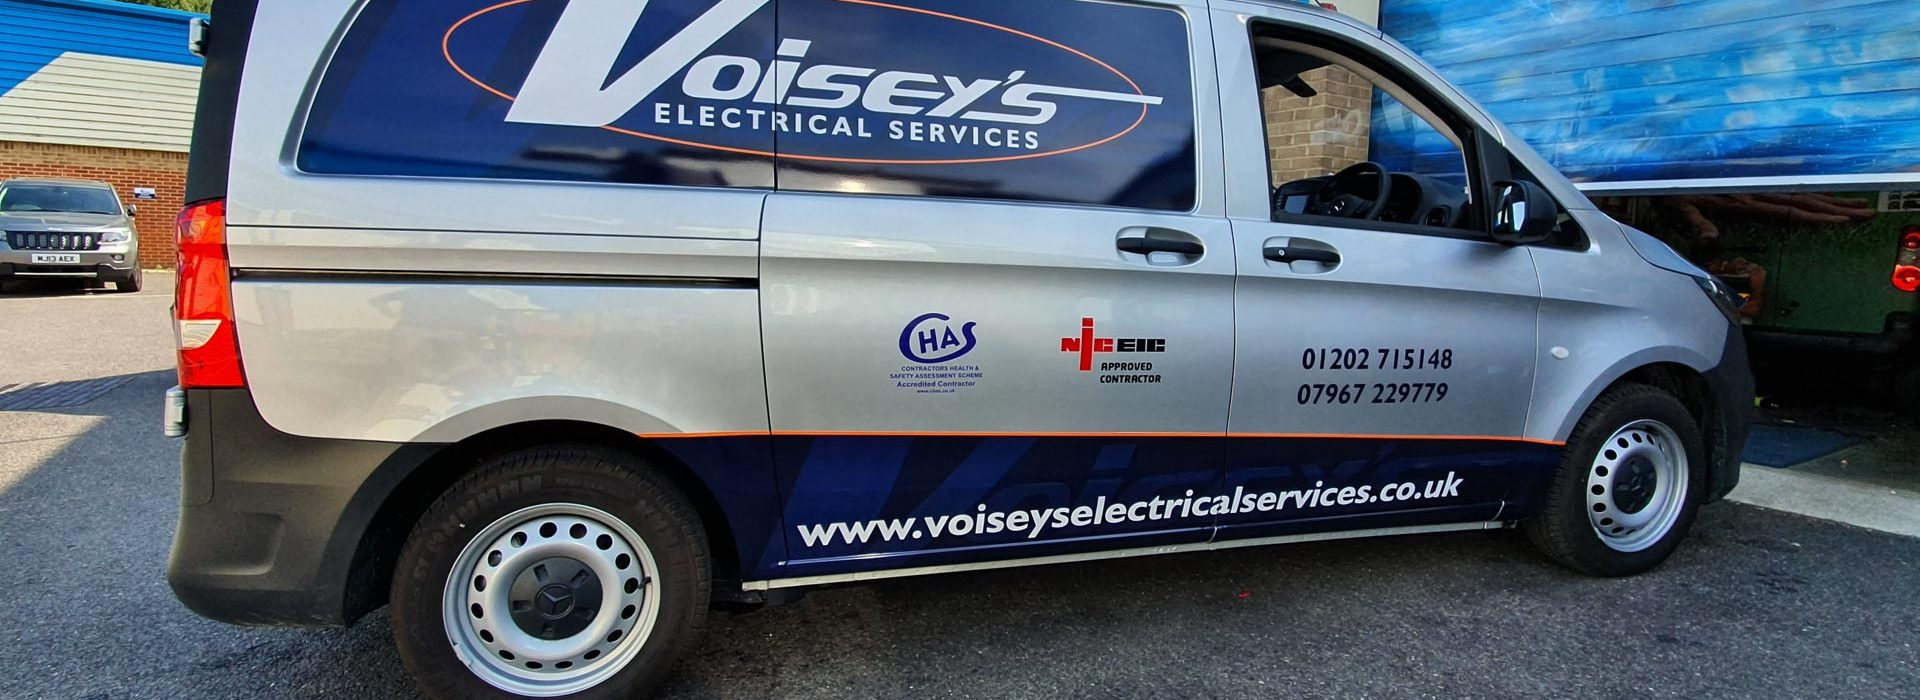 Portfolio - Voiseys Electrical Services Van Vehicle Wrap - Insignia Signs